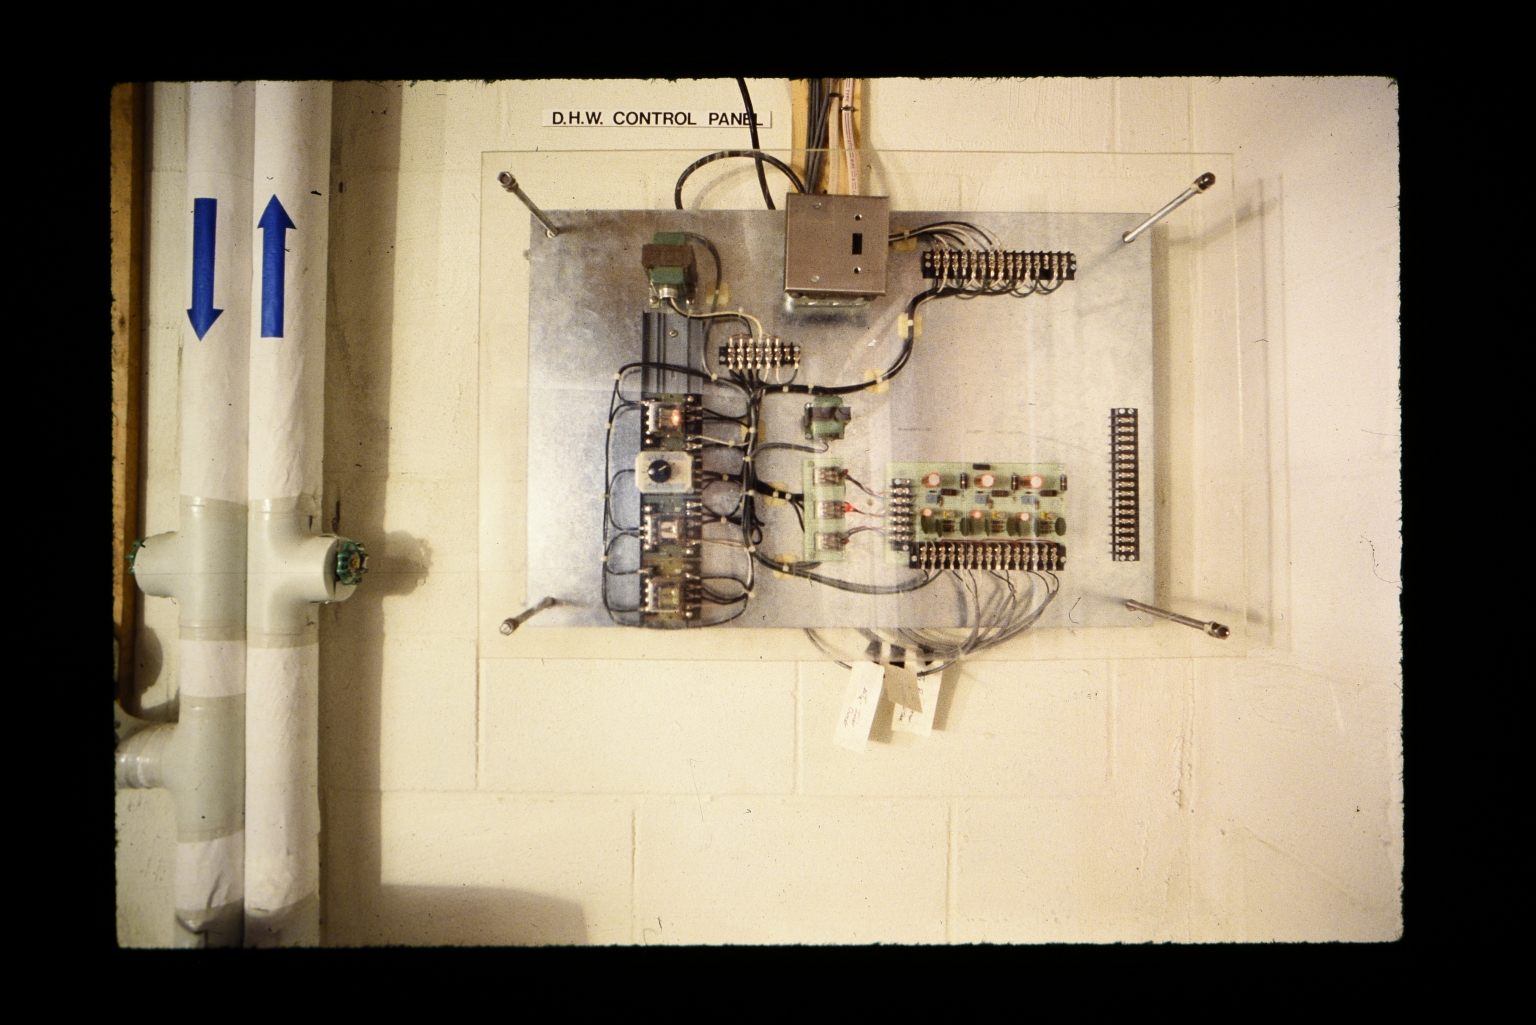 Energy House control panel